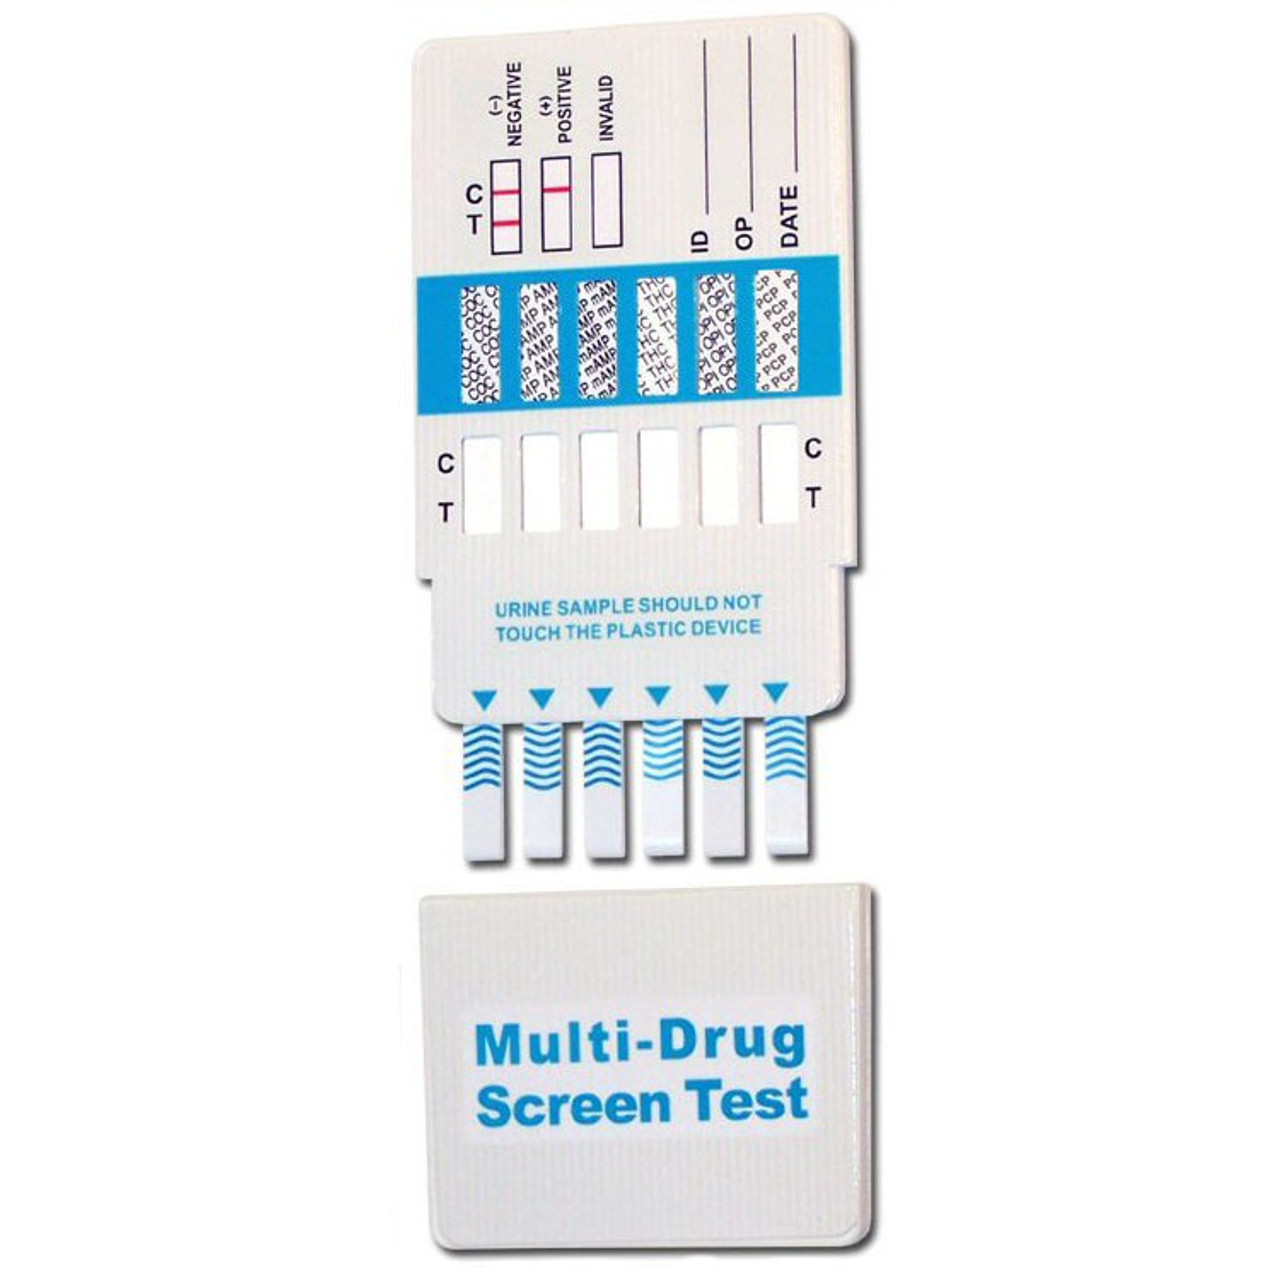 Abbott Diagnostics 10 Panel Drug Test Dip Card Alere Toxicology DOA-1104, DOA-1104-531, DOA-2104, DOA-3104